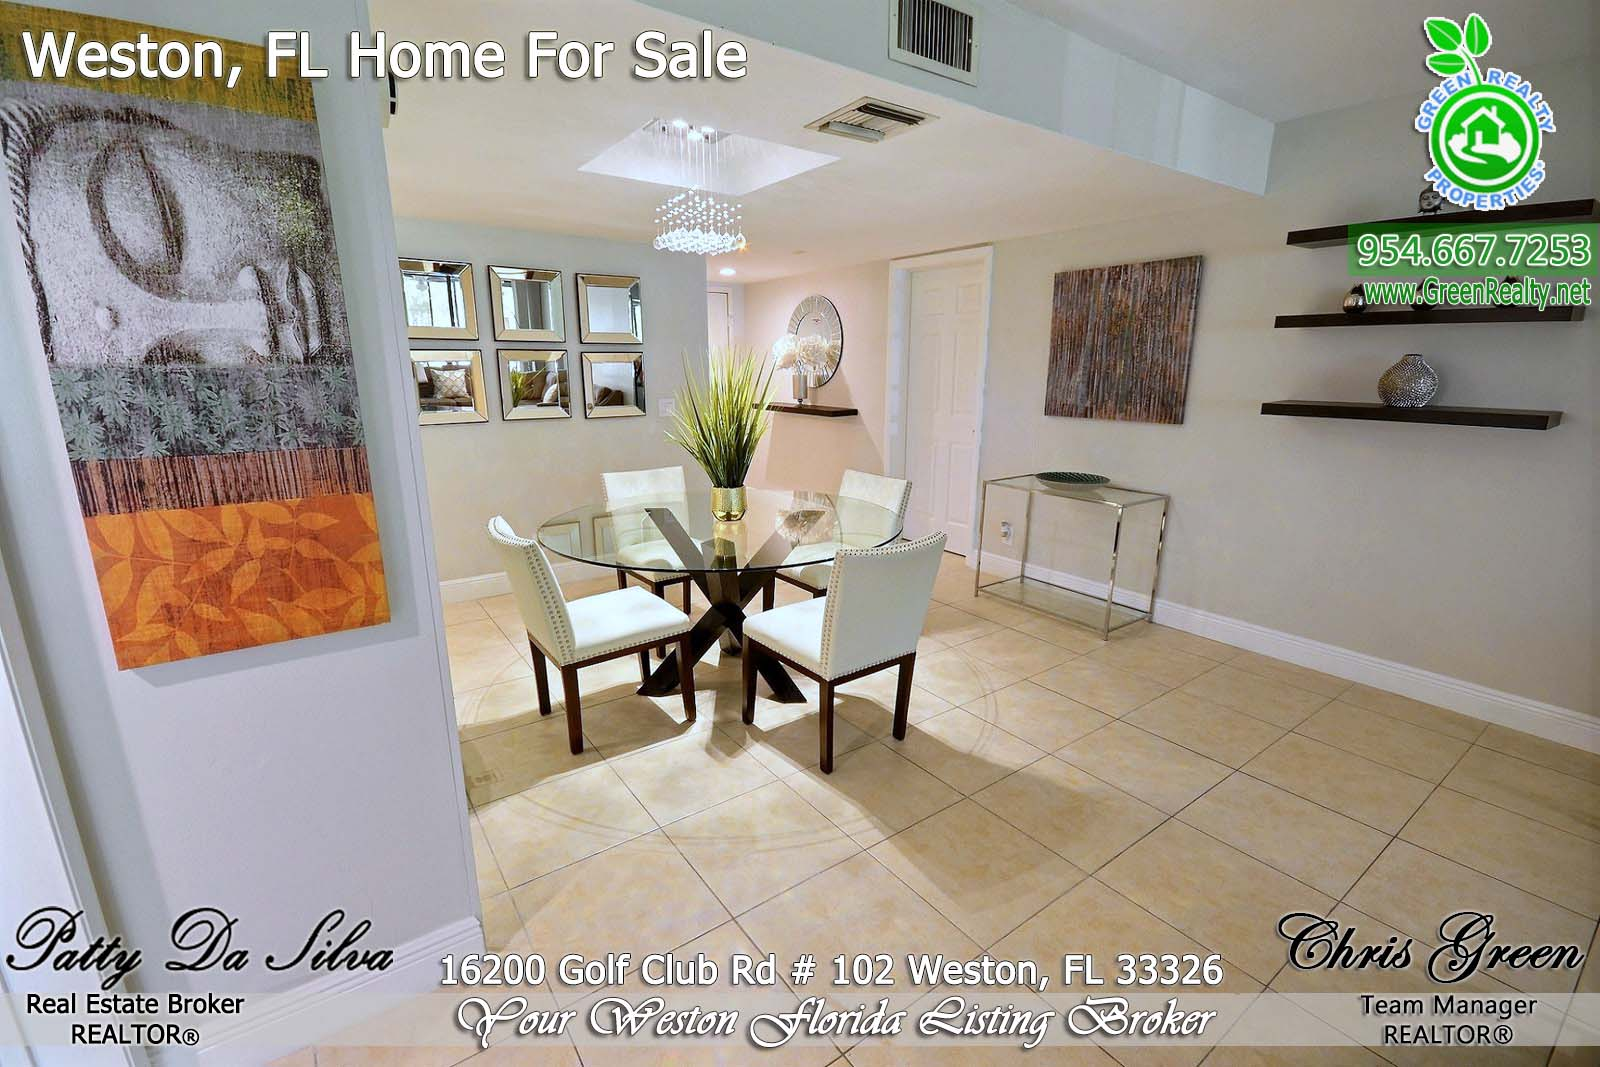 6 16200 Golf Club Rd, Unit 102, Weston FL 33326 (6)